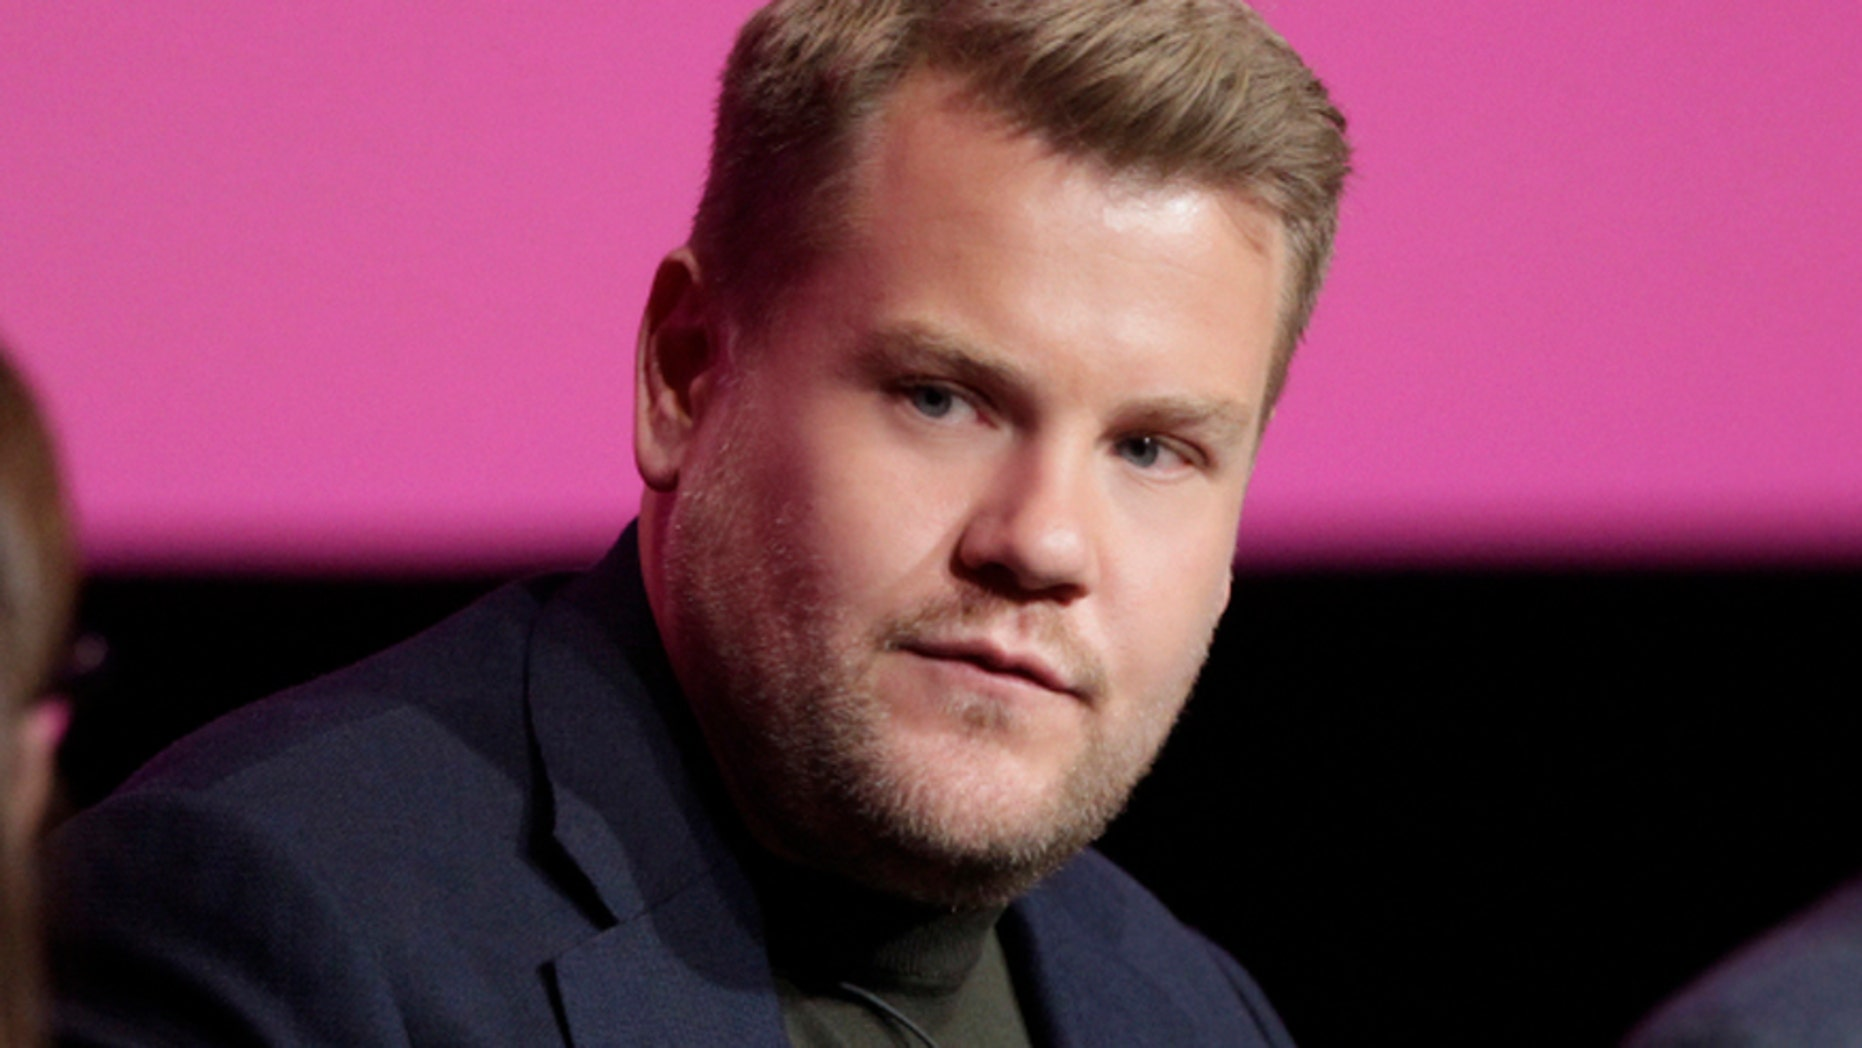 """James Corden during the """"For Your Consideration Event"""" for """"The Late Late Show Wtih James Corden"""" held at the Wolf Theatre, Saban Media Center at the Television Academy on May 2, 2017."""